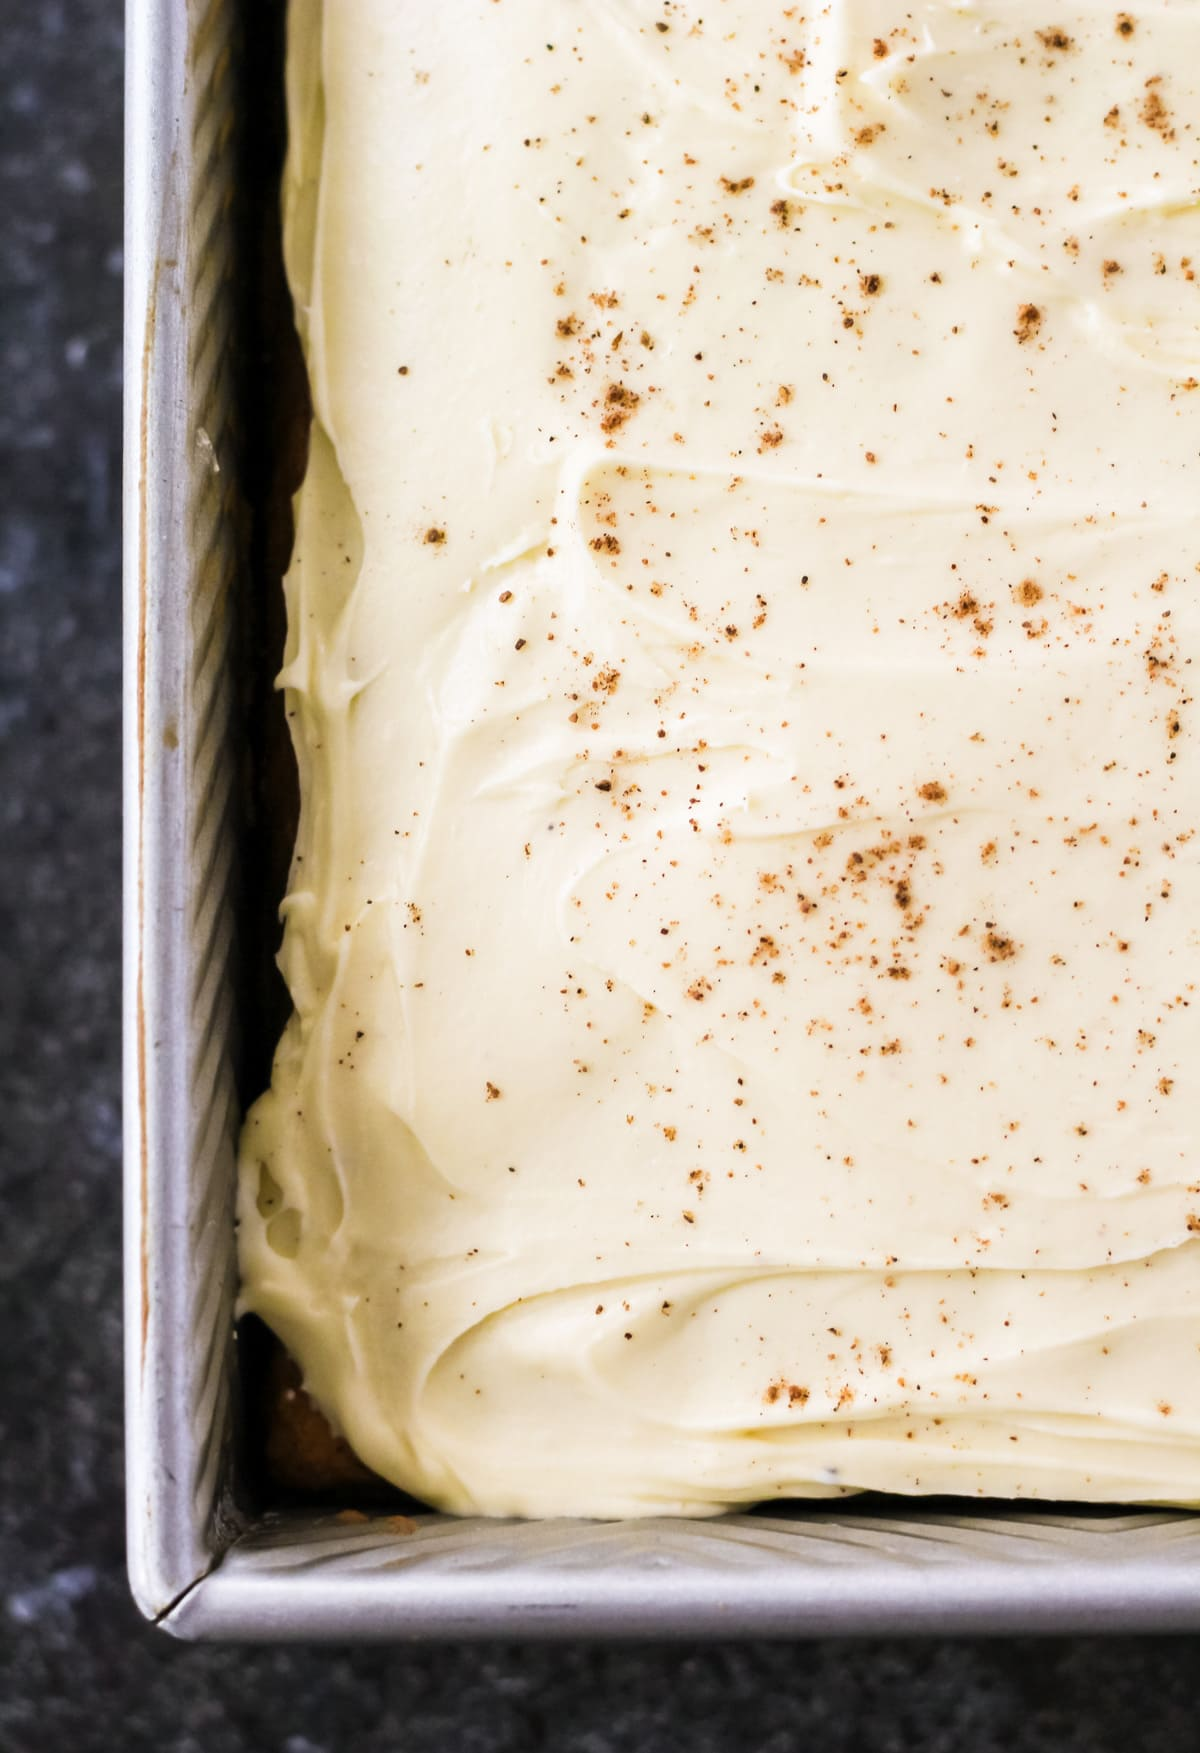 a top down view of the corner of a frosted eggnog cake in a cake pan. sprinkled wth nutmeg.